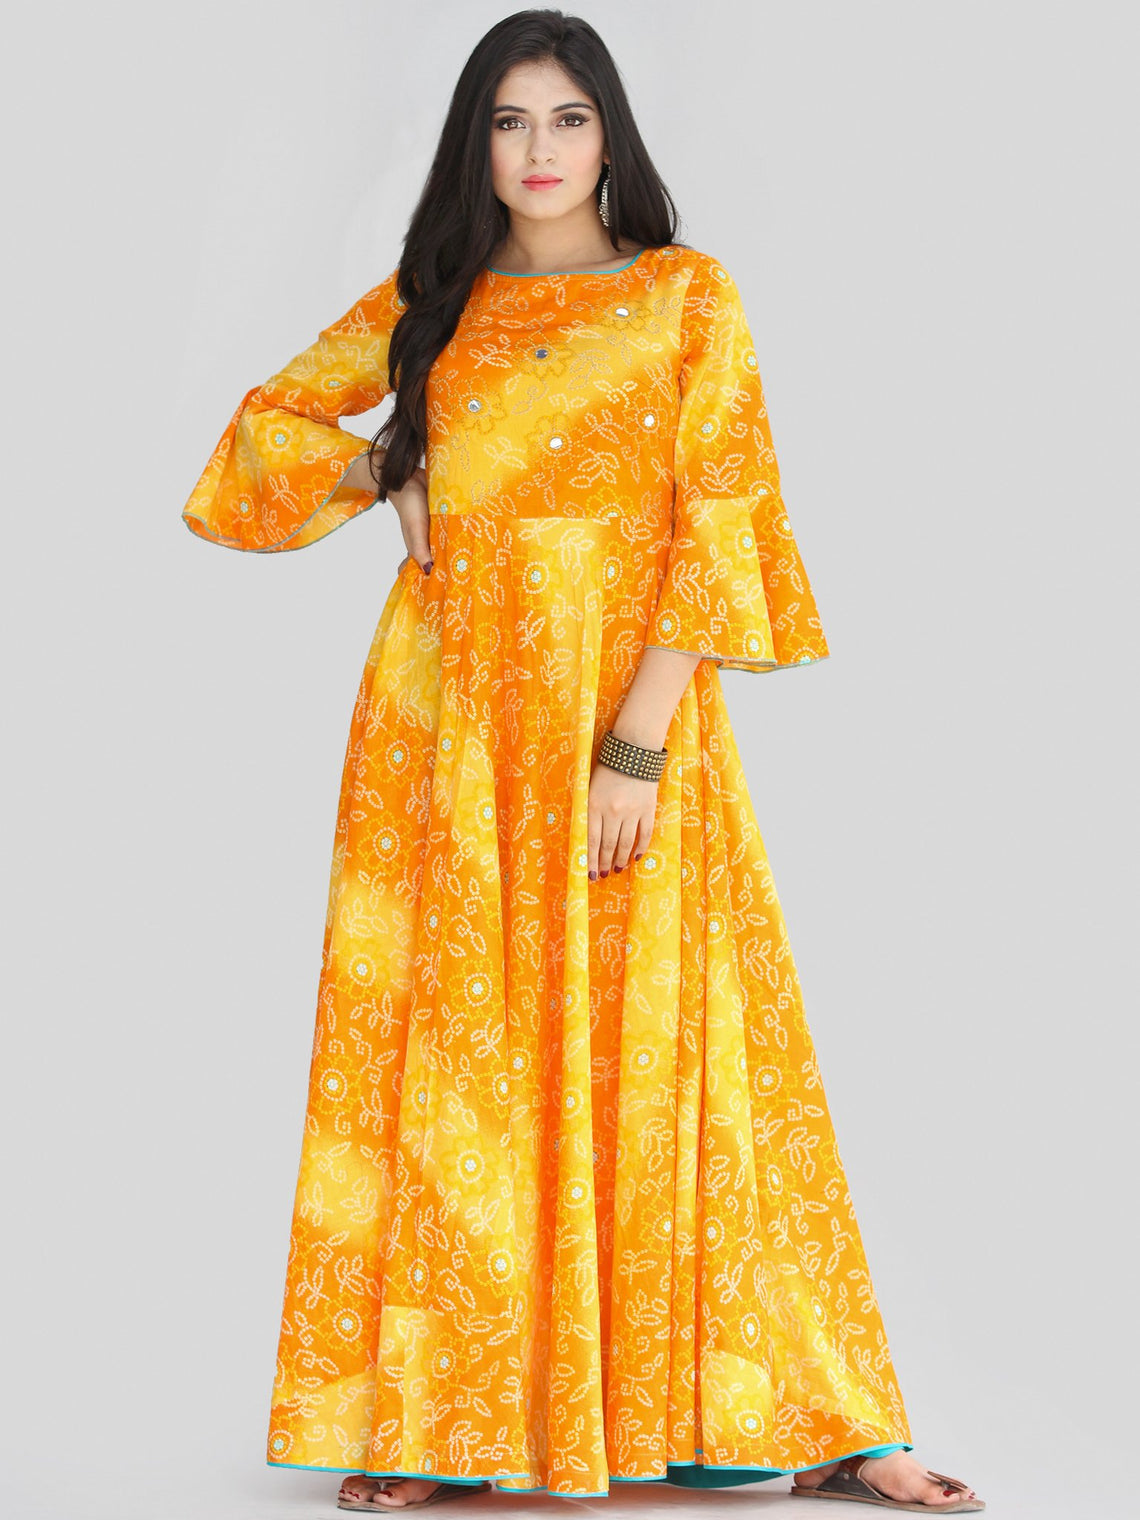 Maher - Yellow Orange Bandhani Printed Urave Cut Long Dress  - D381F2236